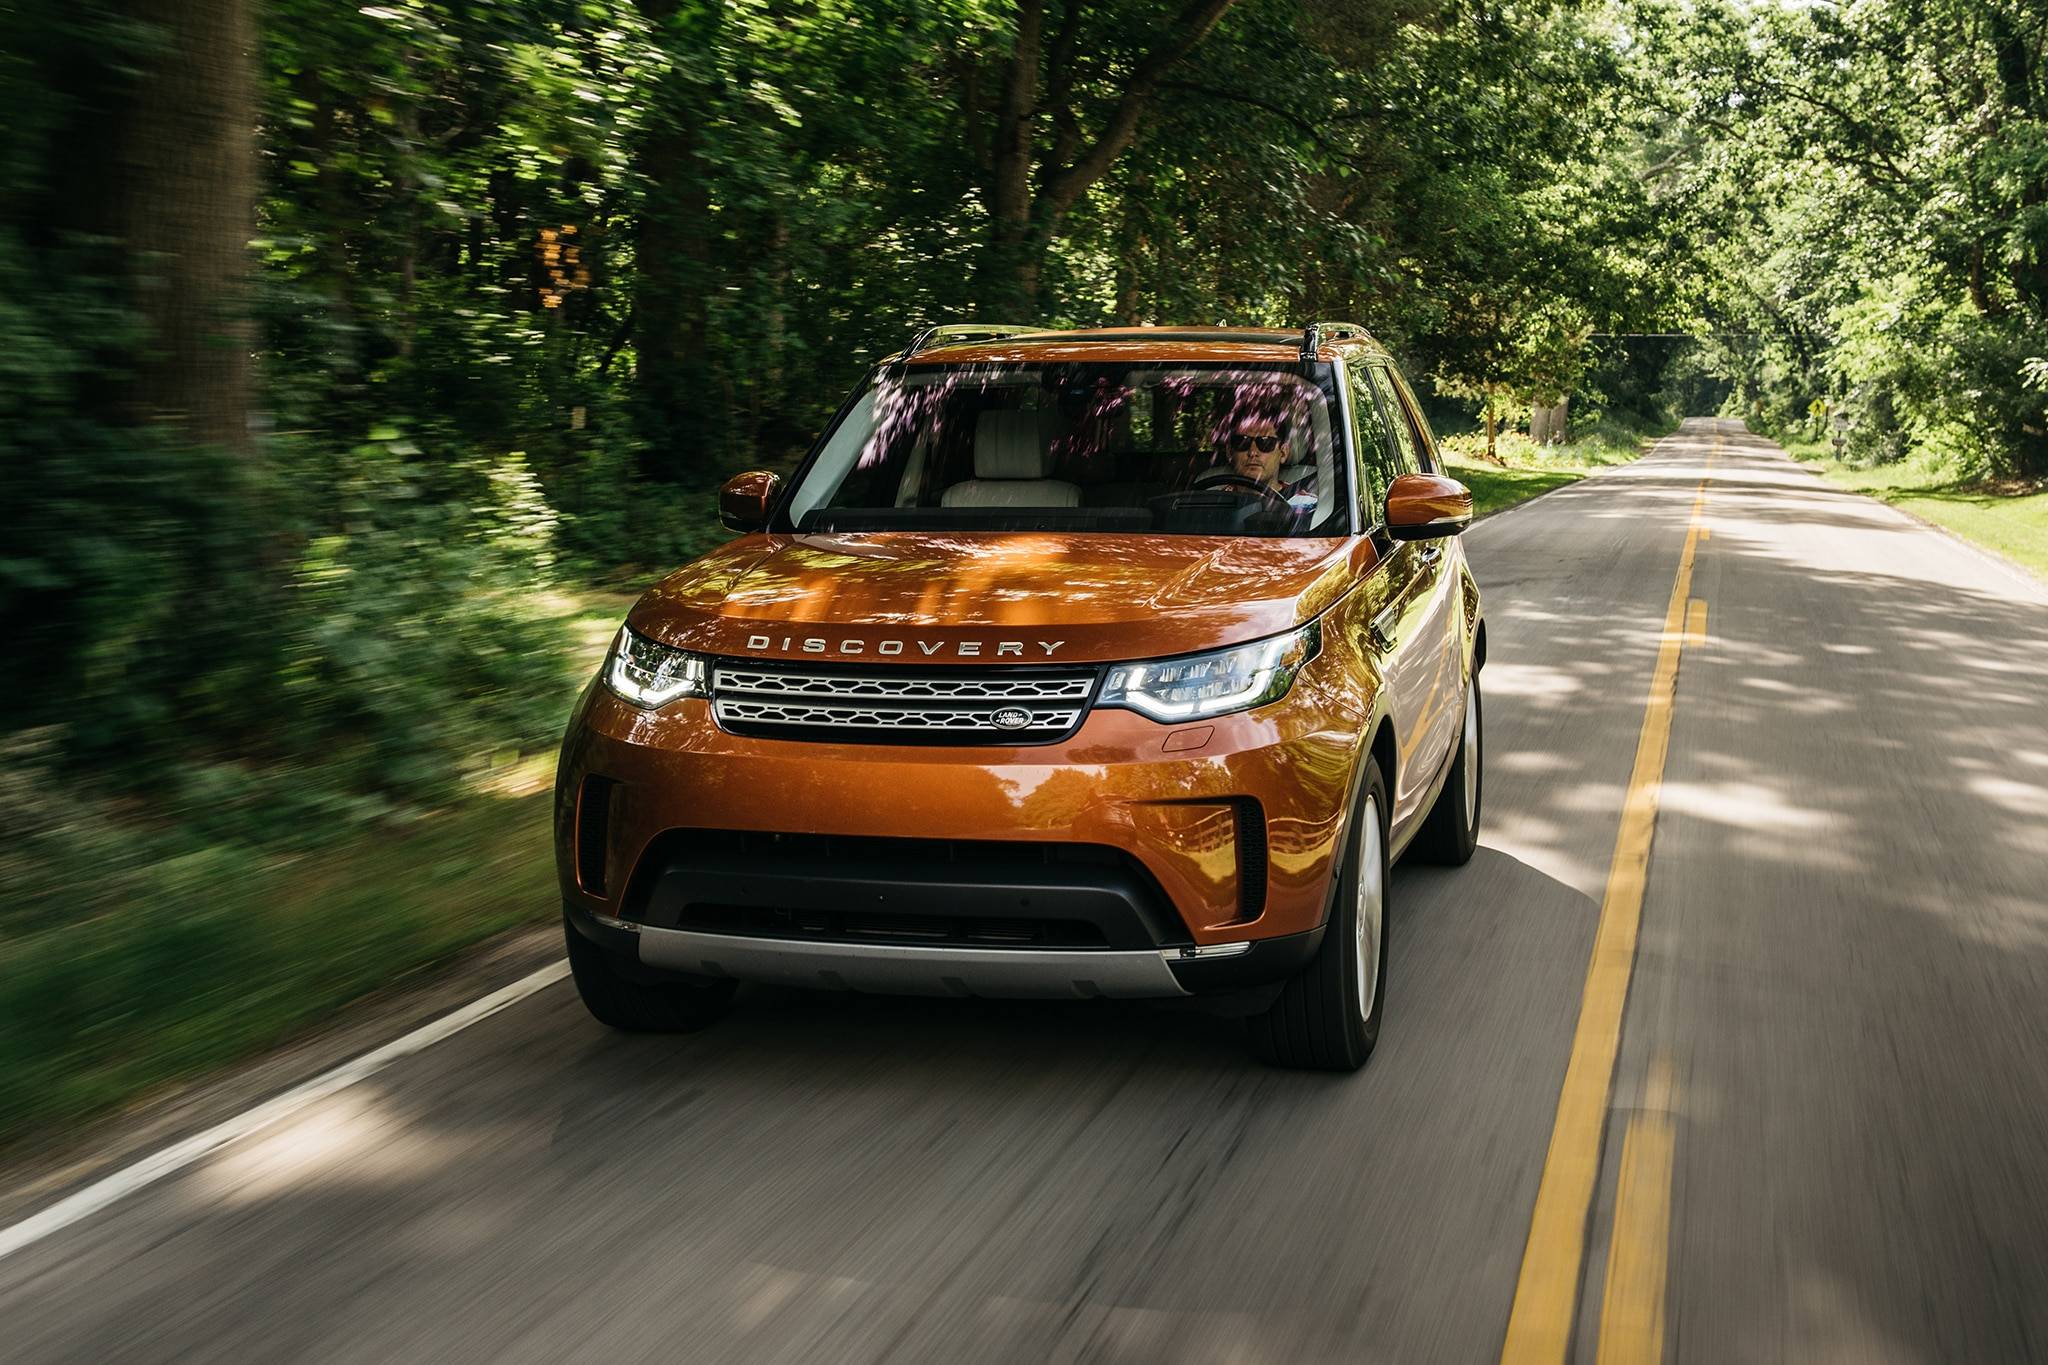 2017 Land Rover Discovery Td6 HSE Rear Three Quarter In Motion 03